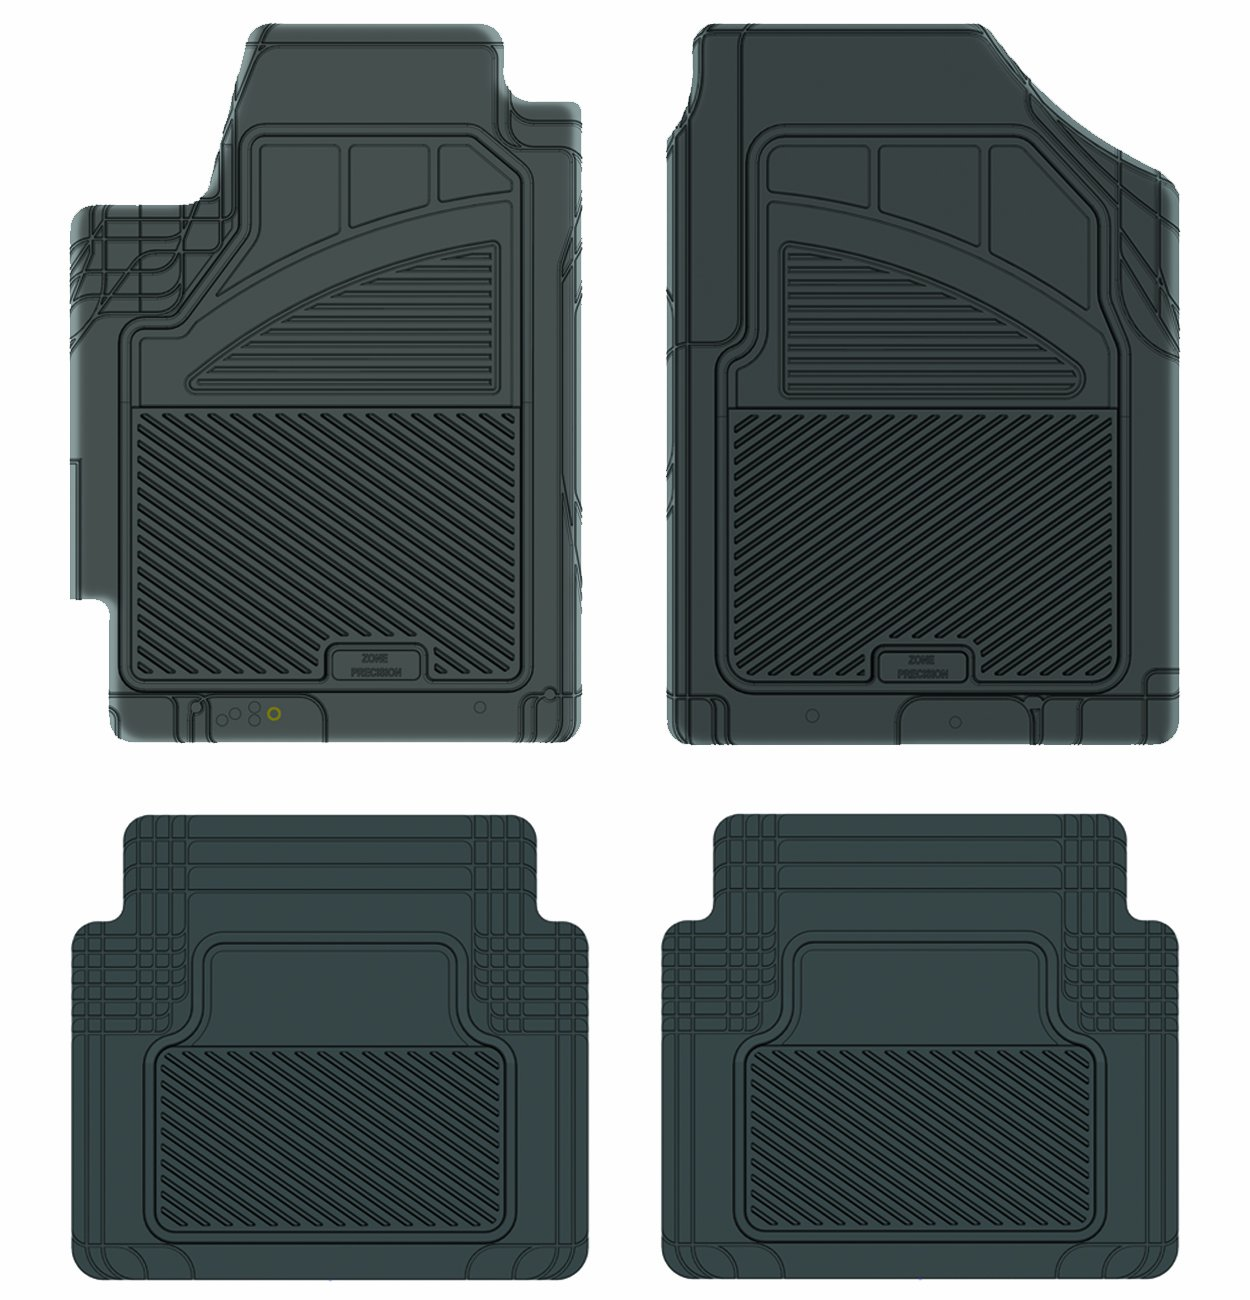 Black Koolatron Pants Saver Custom Fit 4 Piece All Weather Car Mat for Select Nissan Altima Models